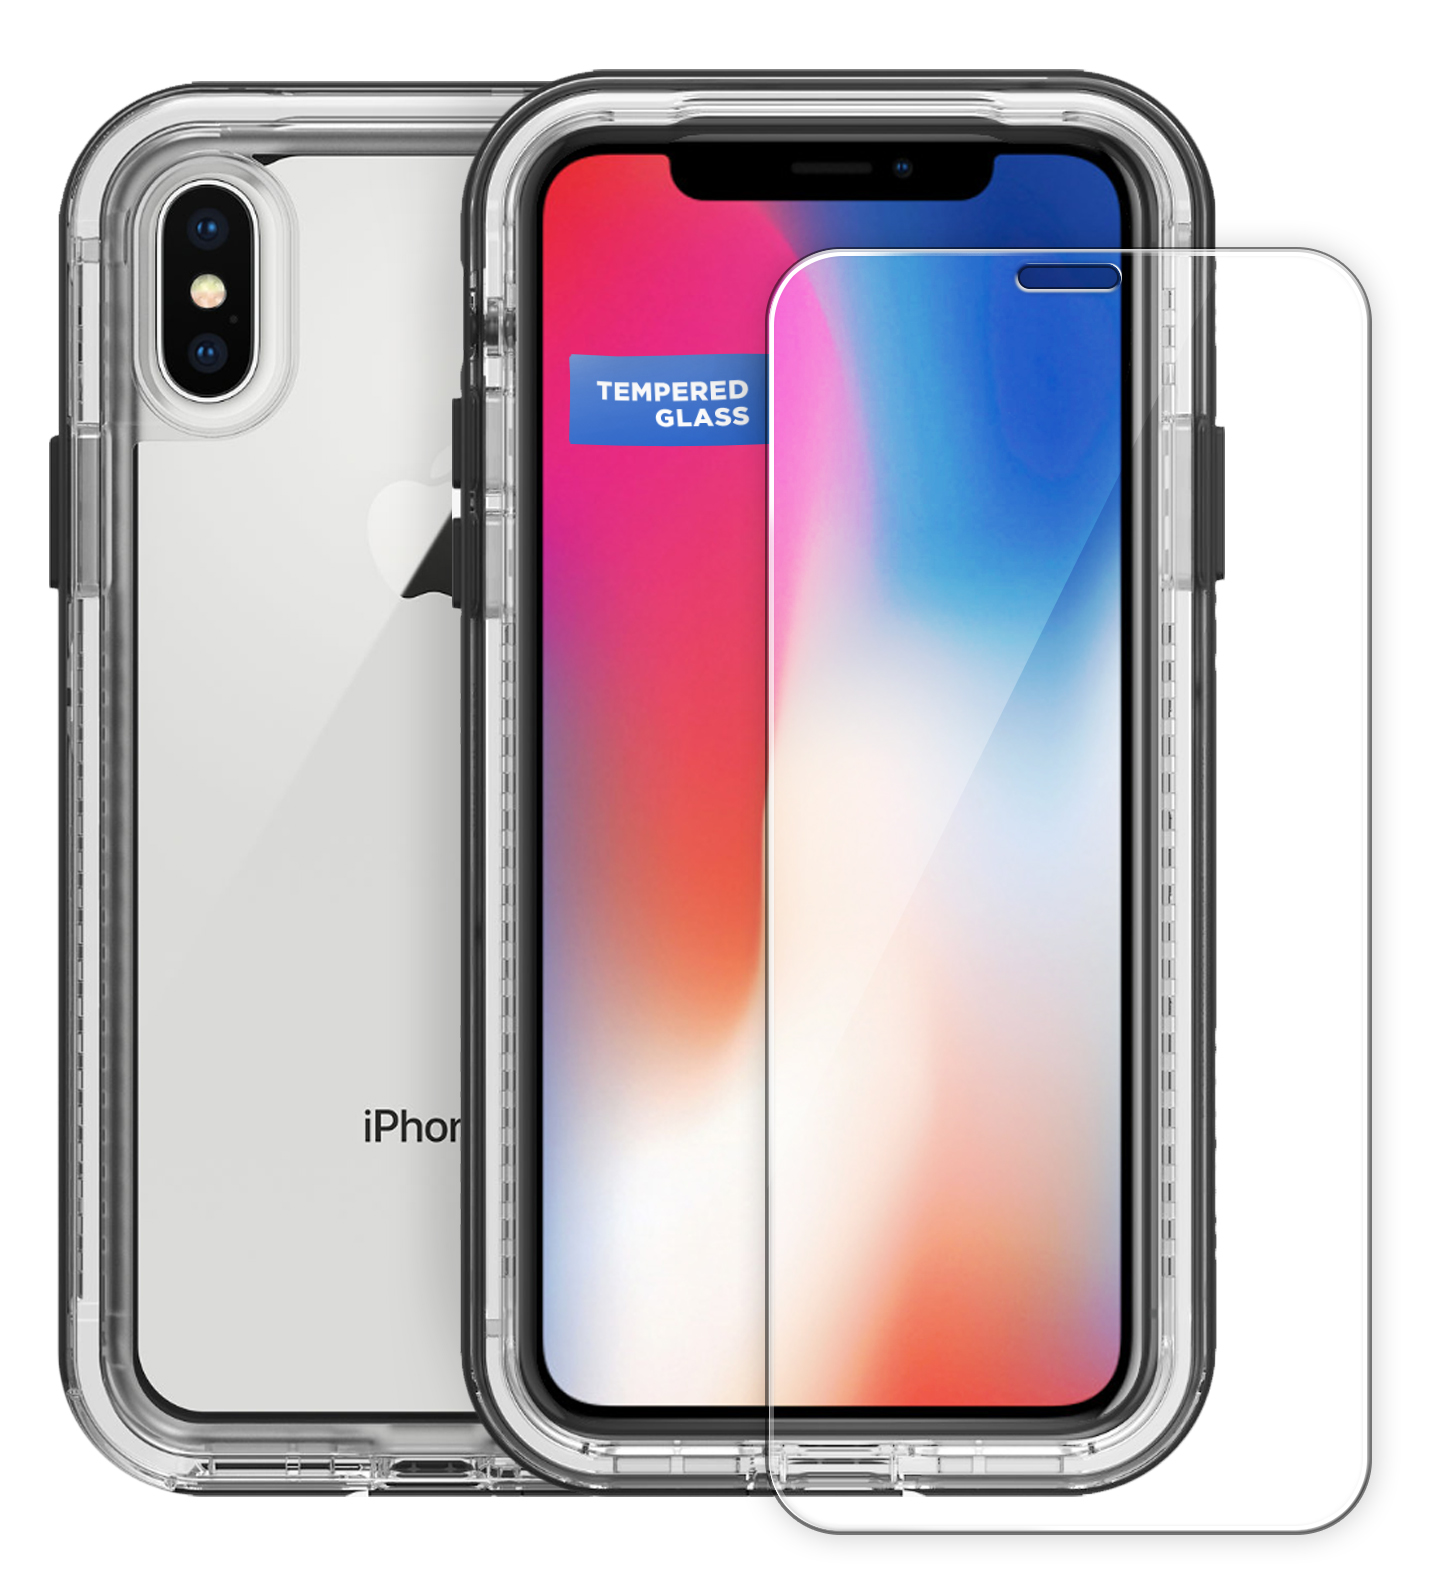 Tempered Glass Screen Protector for Lifeproof Next Case - iPhone X